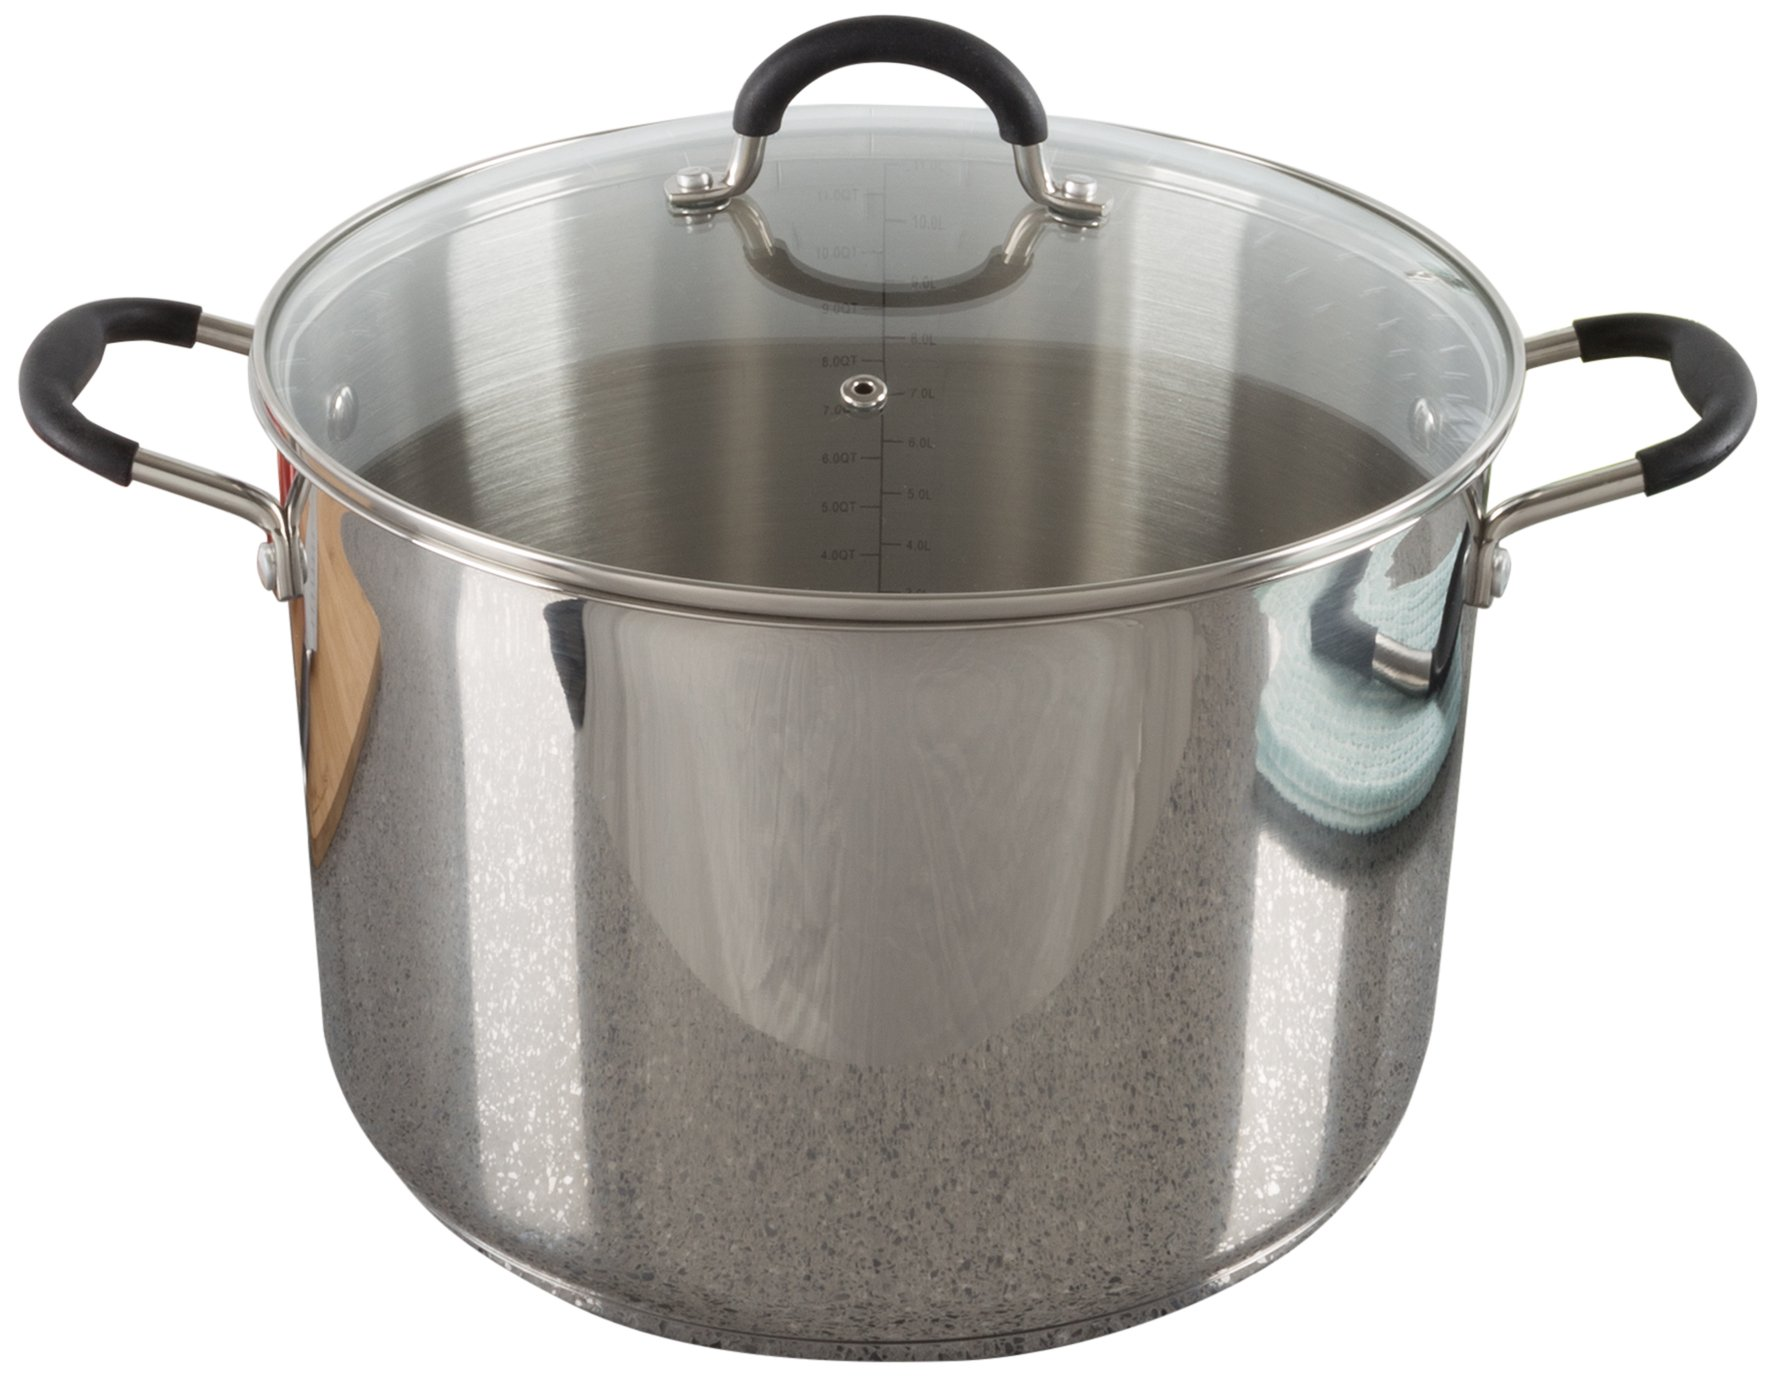 Large Stock Pot-Stainless Steel Pot with Lid-Compatible with Electric, Gas, Induction or Gas Cooktops-12-Quart Capacity Cookware by Classic Cuisine